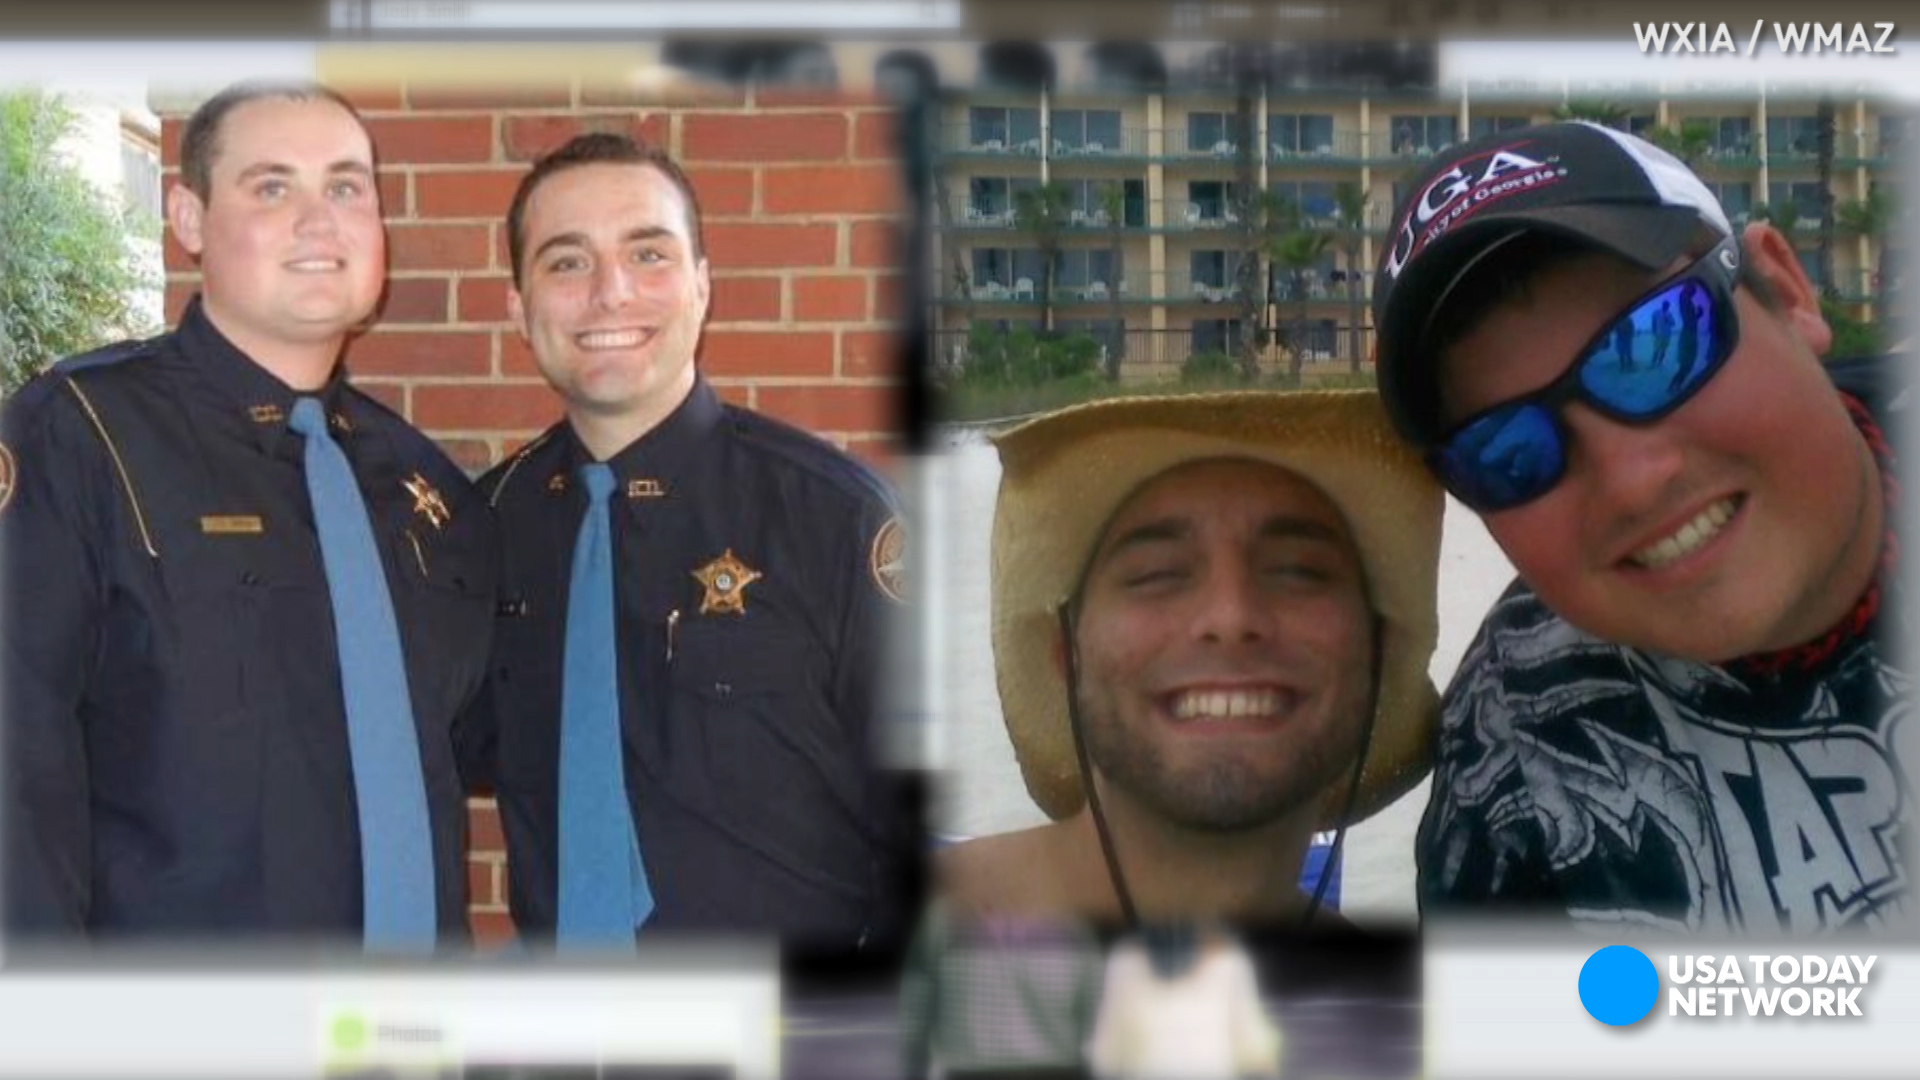 A massive manhunt is underway after two police officers were shot near Georgia Southwestern State University. One of the officers was killed. The other, his best friend, was critically injured.